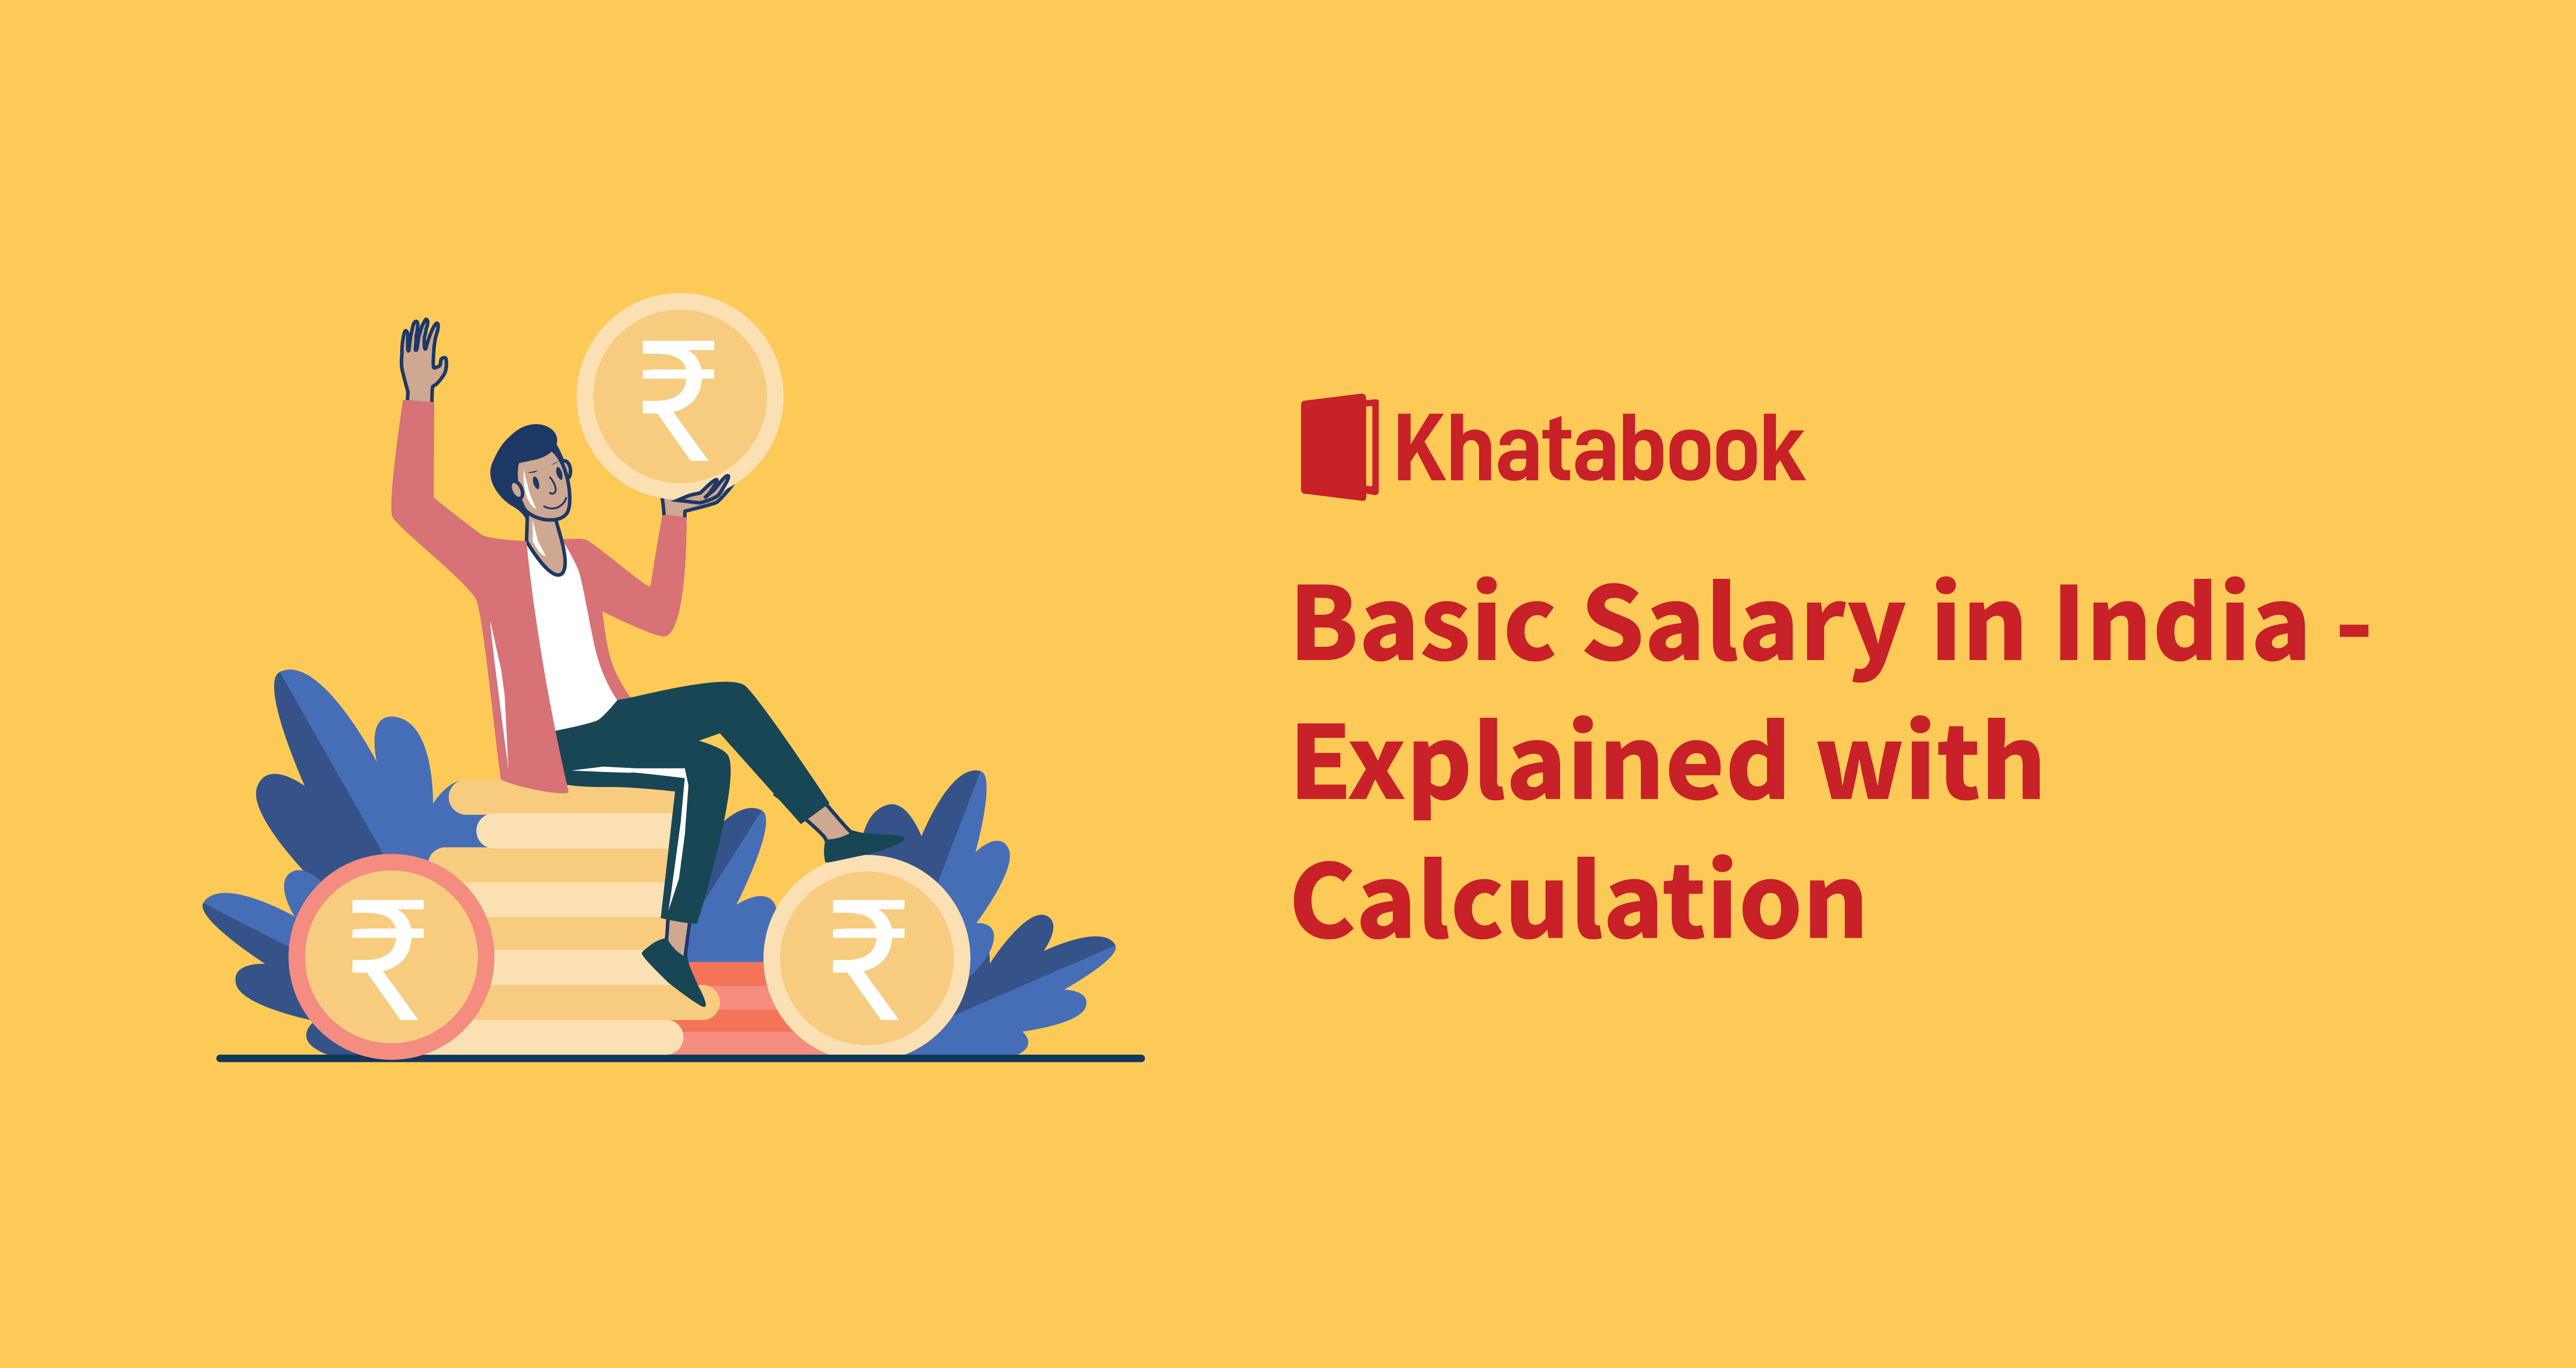 Basic Salary in India - Explained with Calculation